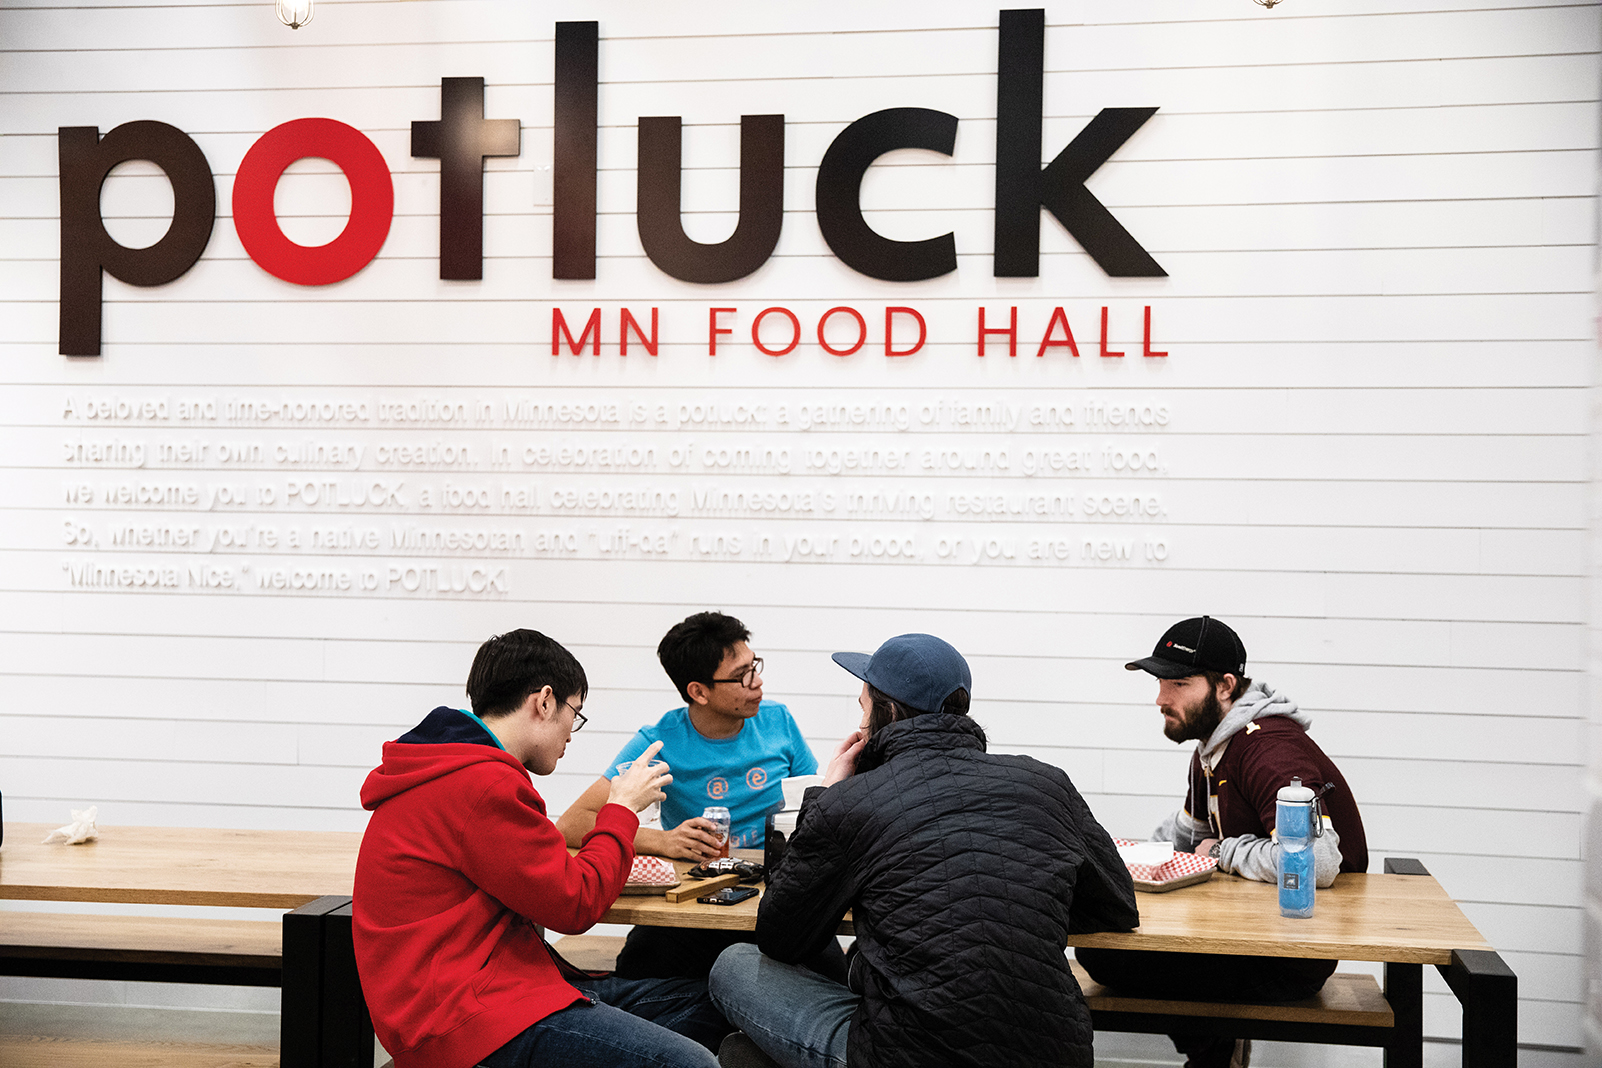 Winter To-Do List: Potluck food hall at Rosedale Center